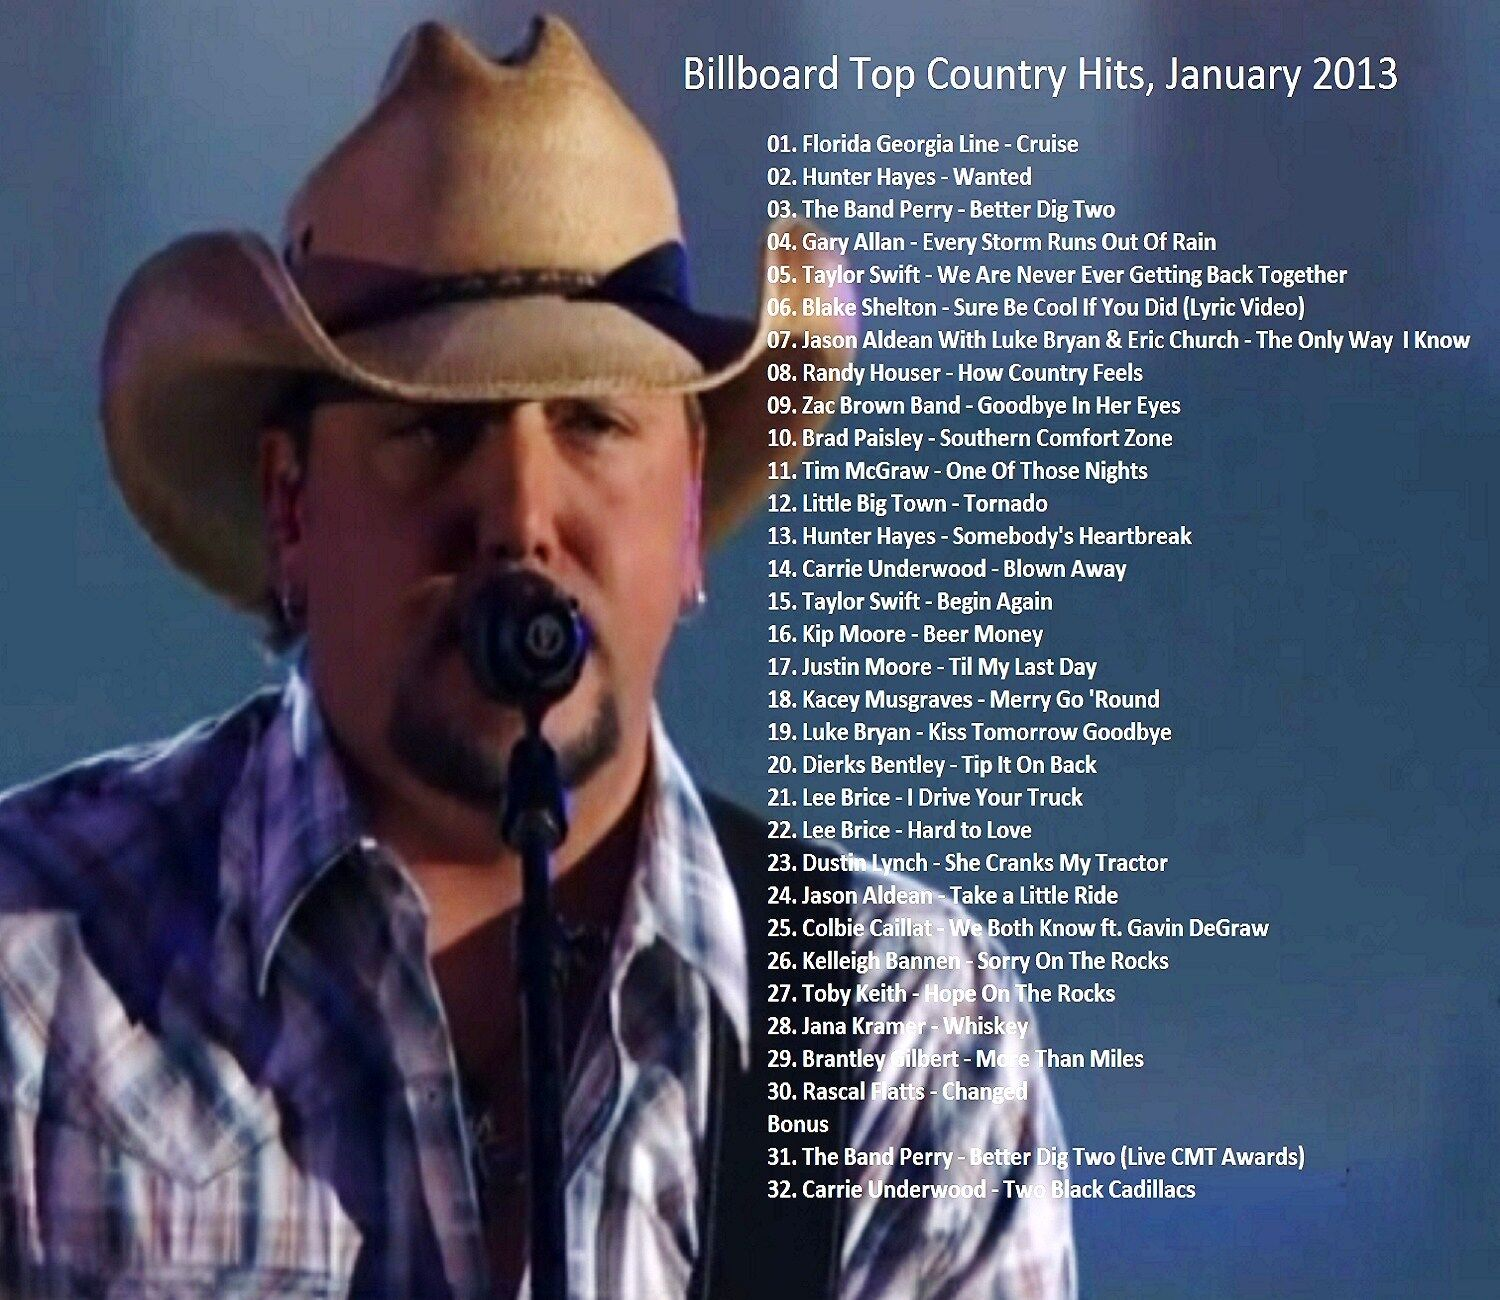 Compilation of Music Videos,Billboard Top Country Hits,January 2013.